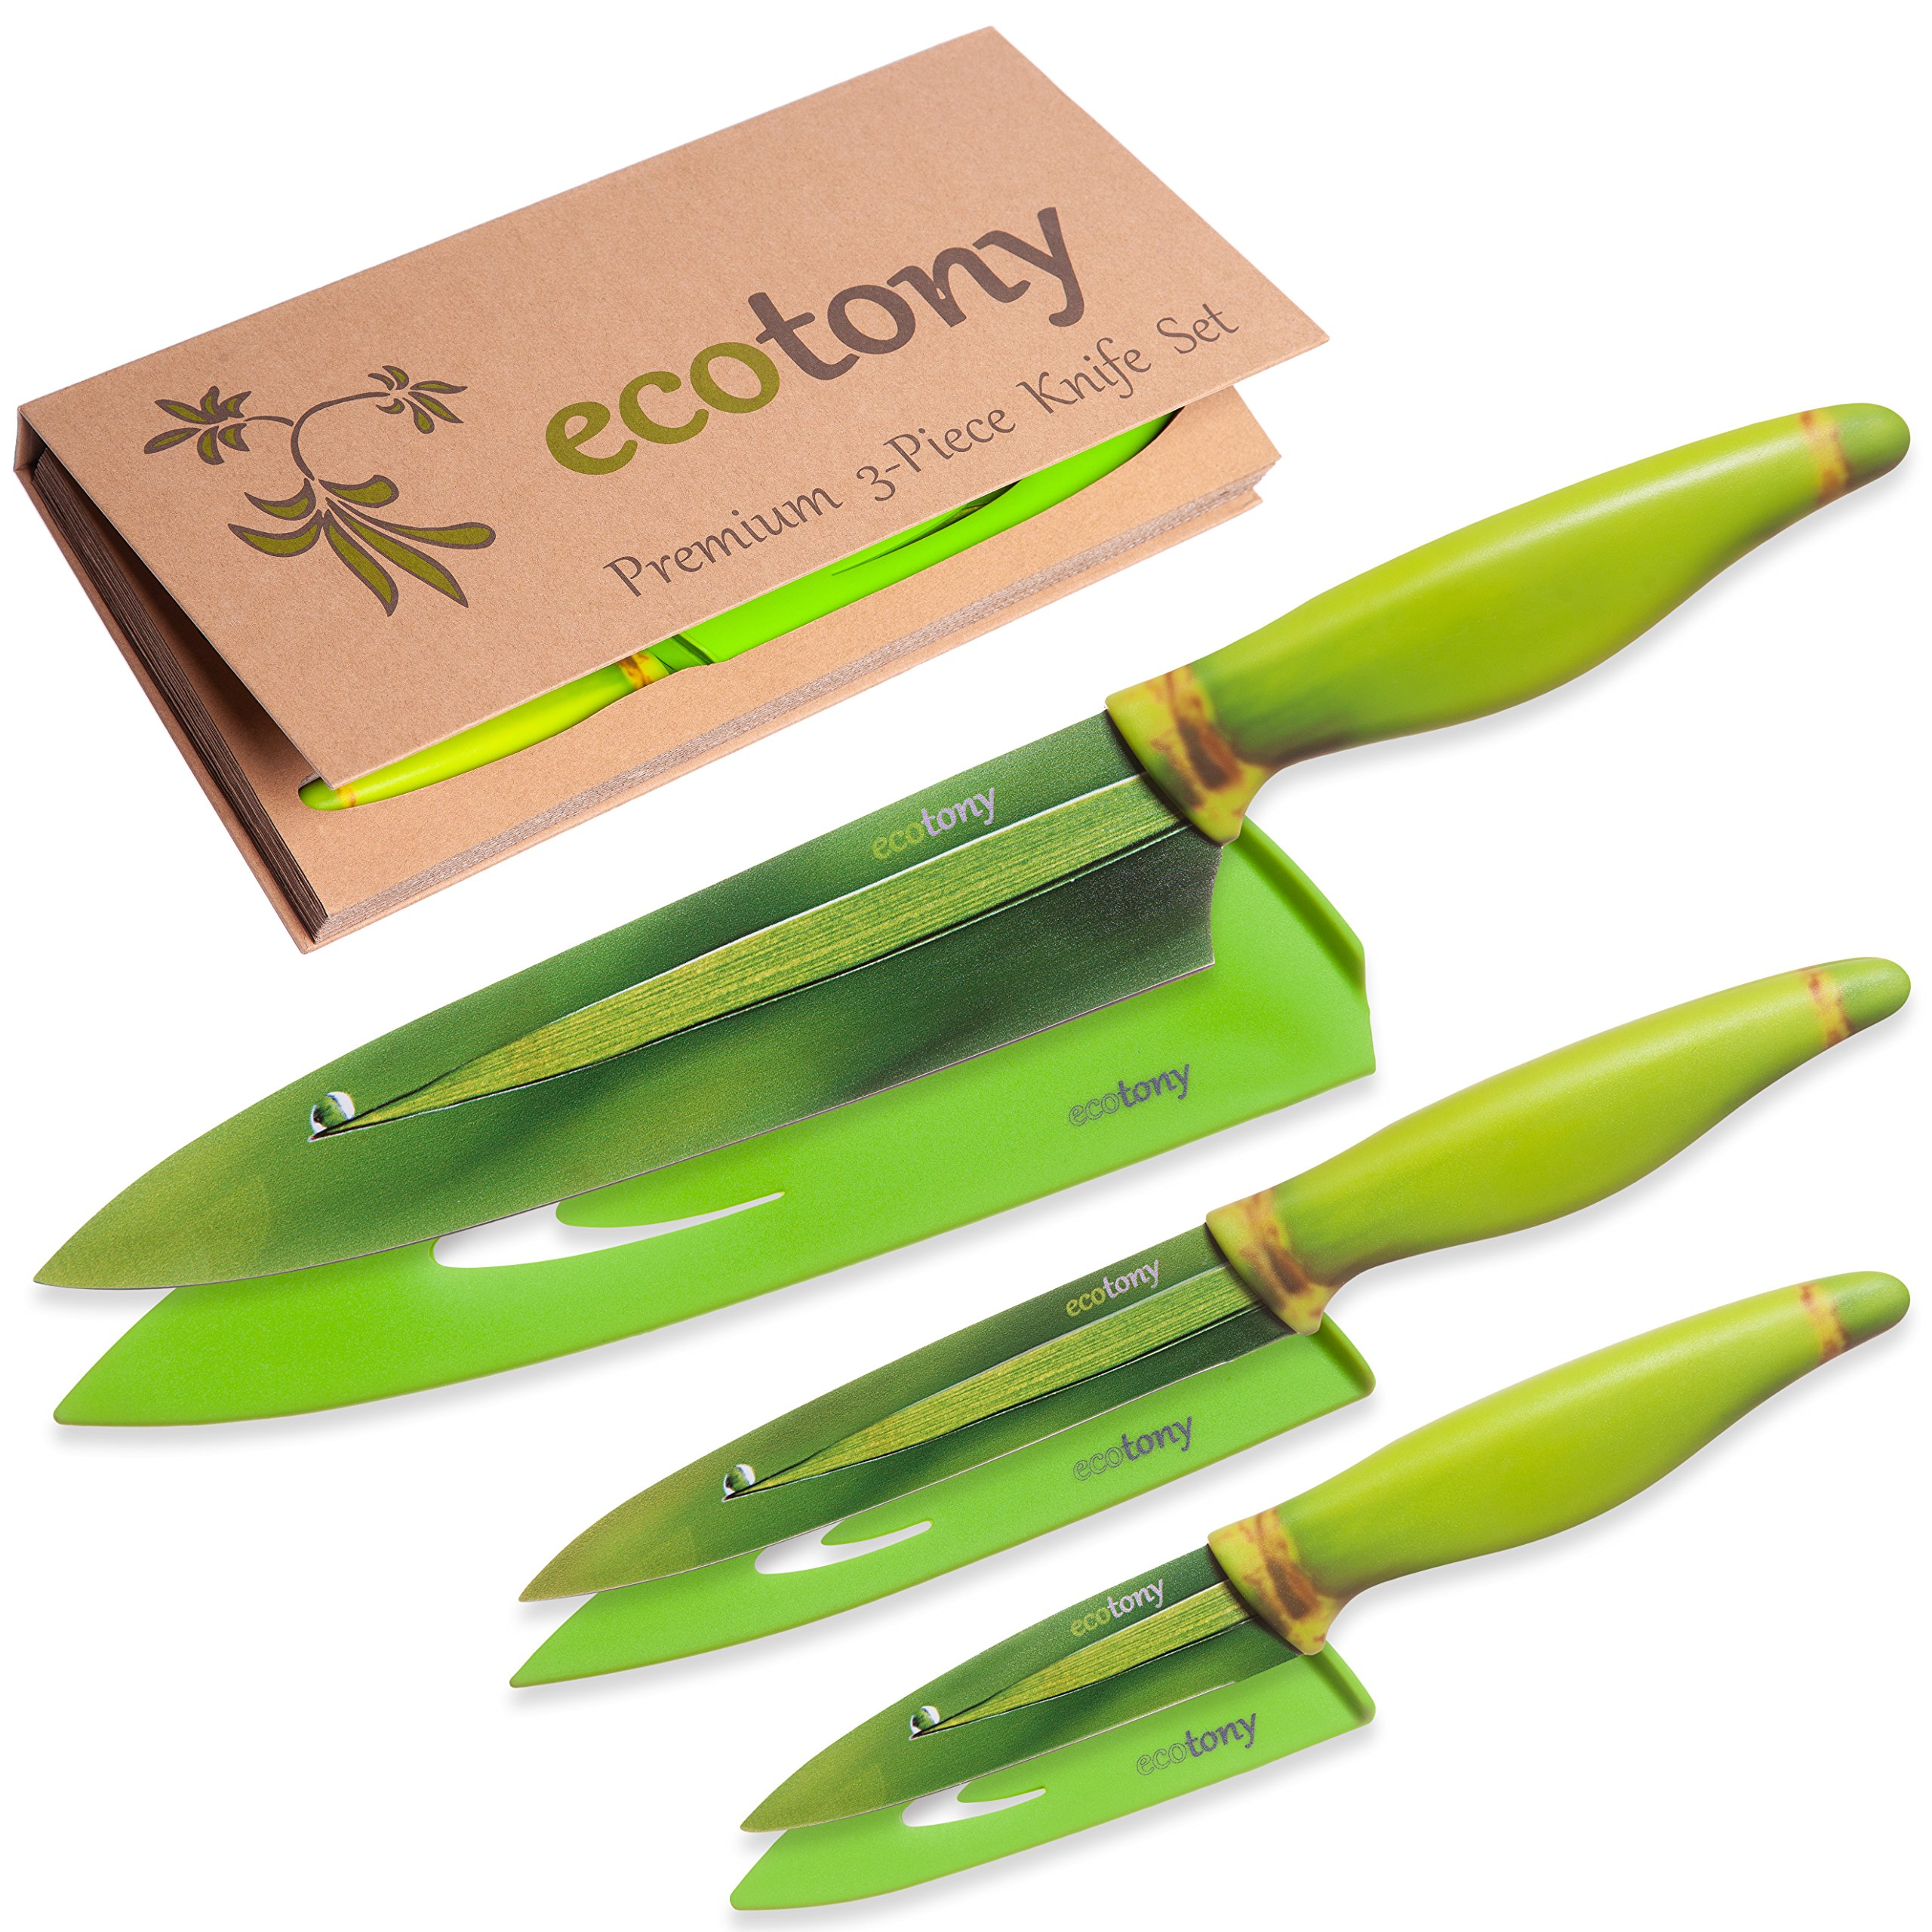 Kitchen Knife Set in Gift Box by ECOTONY - 3 Piece Stainless Steel Color Knife Set: Chef, Utility, Paring Knives - Blade Covers - Unique Home Decor Gifts for Men and for Women